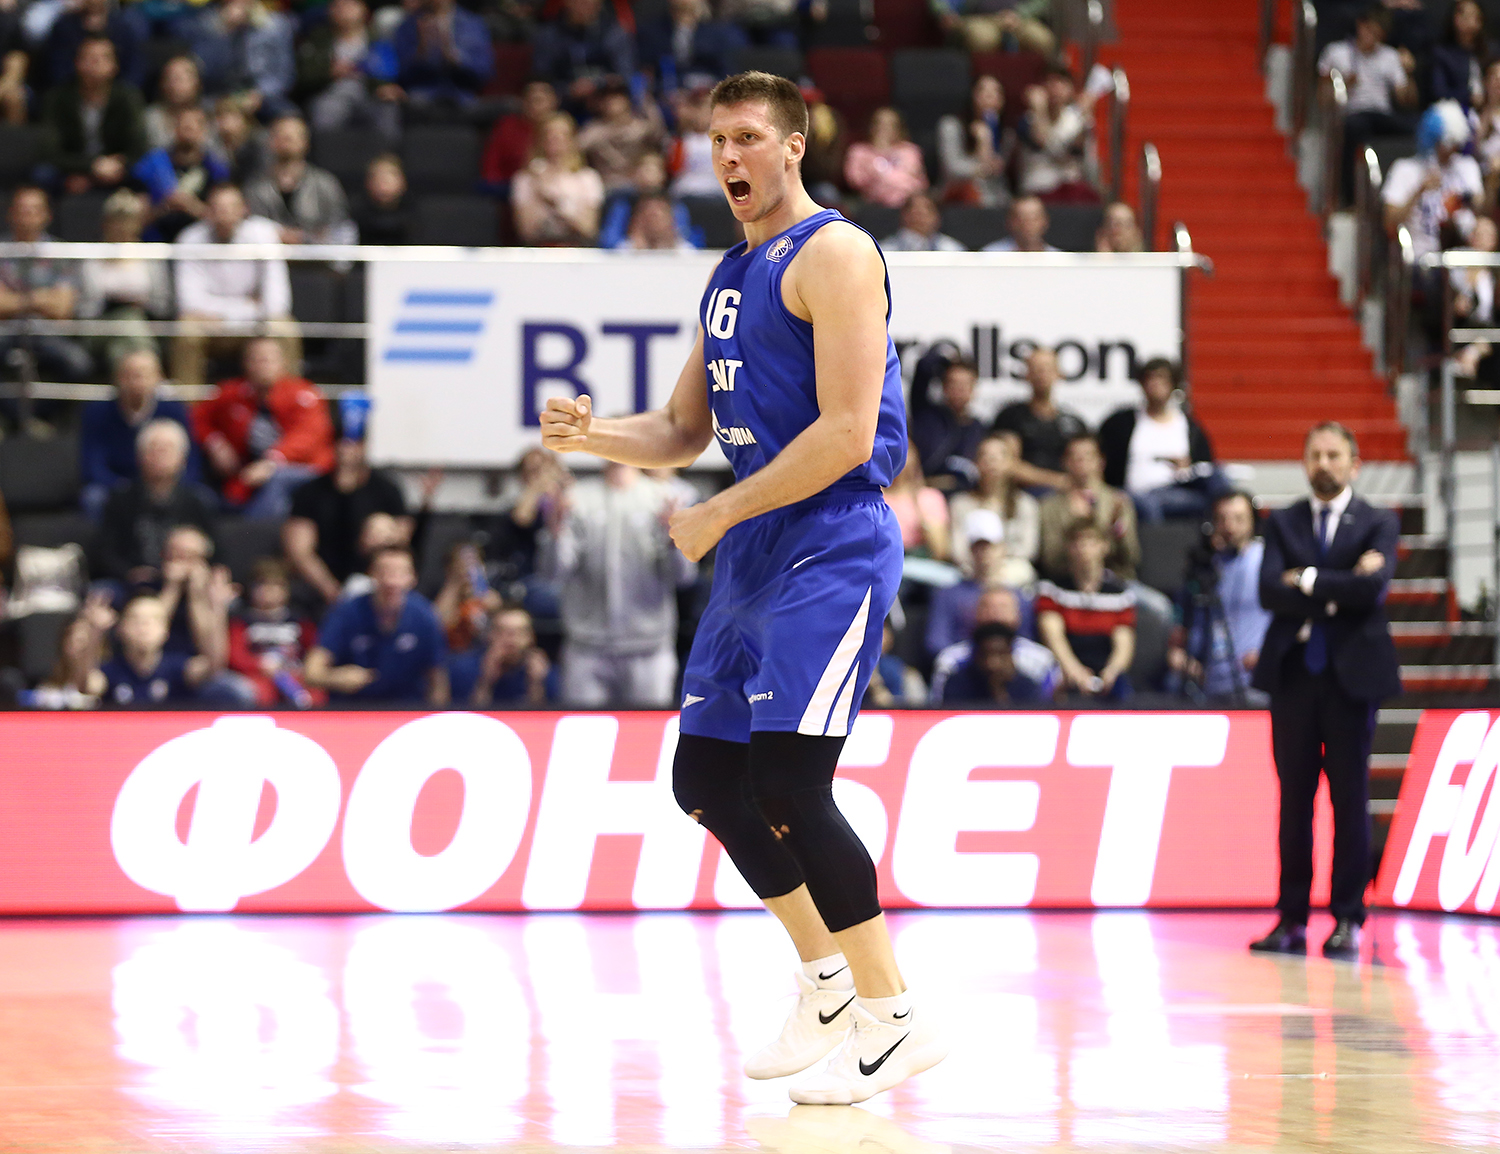 Week 27 In Review: Crucial Overtime In St. Petersburg, Record Win For Kalev